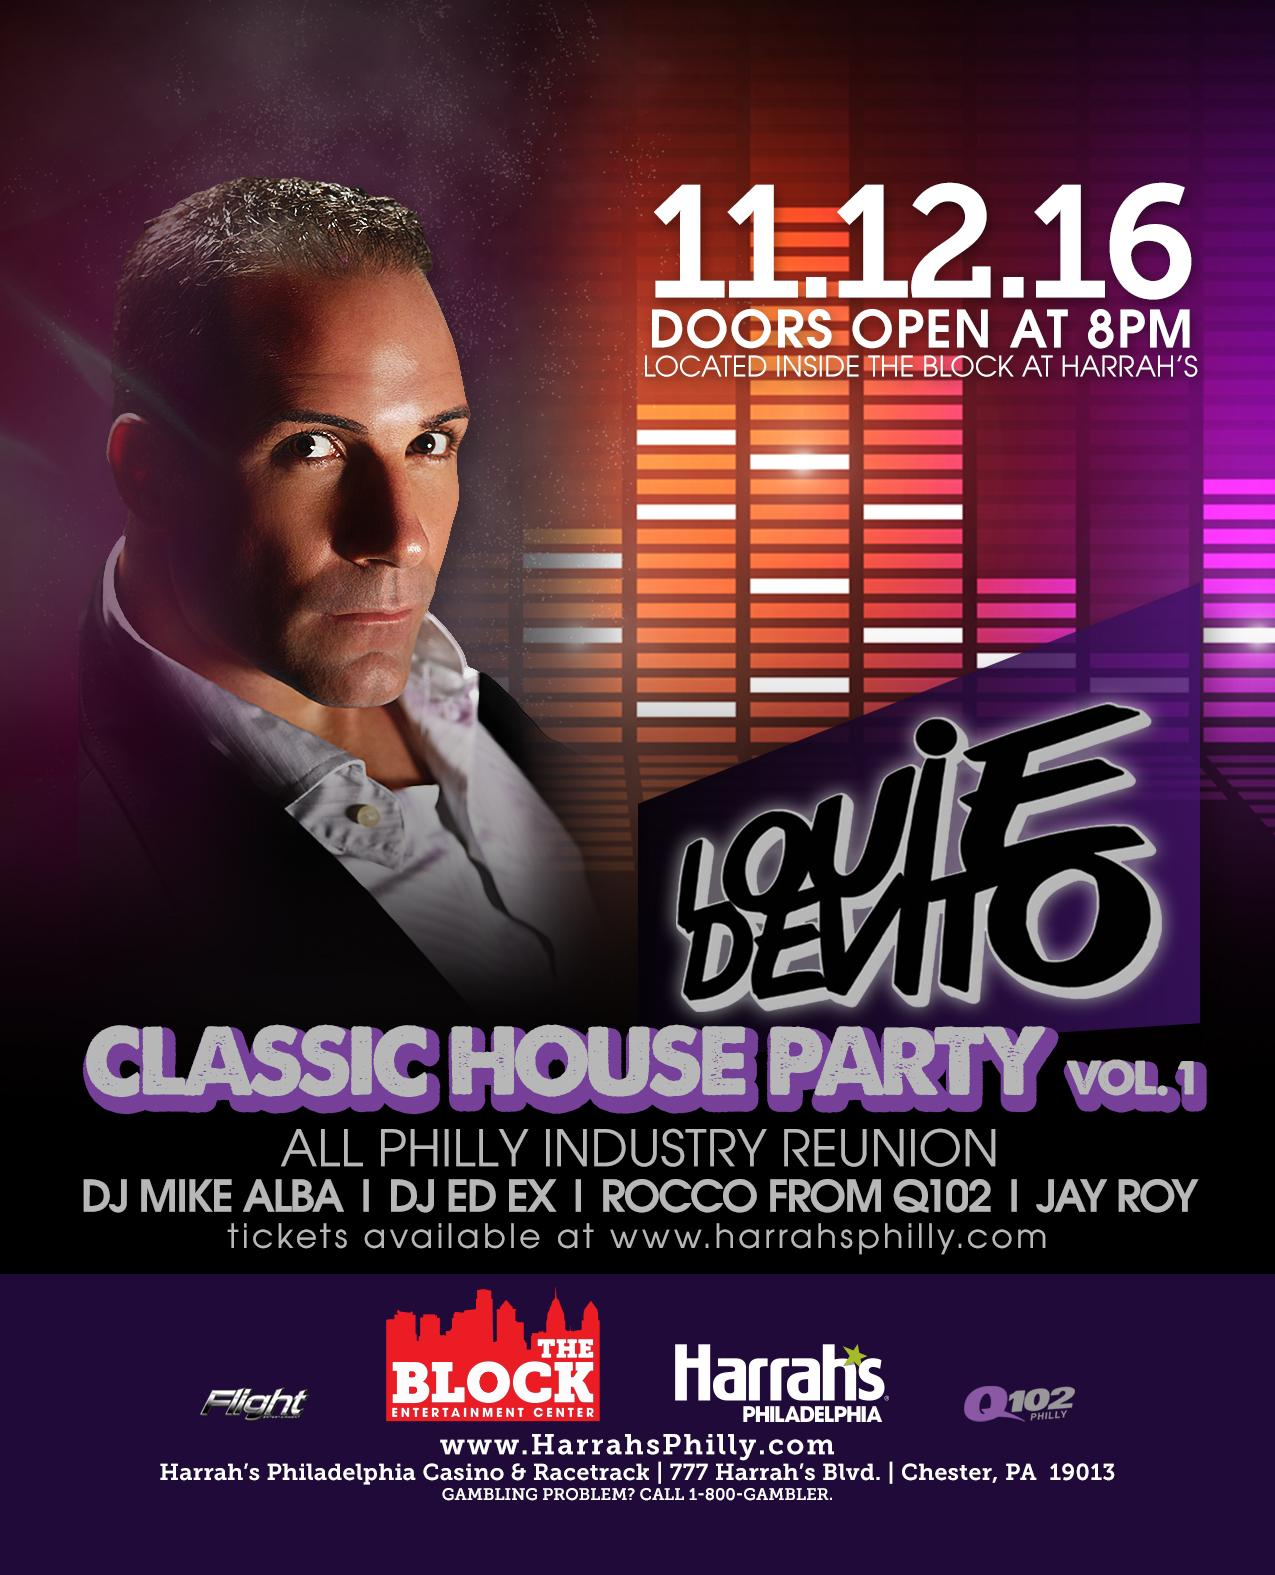 Louie devito 39 s classic house party vol 1 tickets in for Classic house volume 1